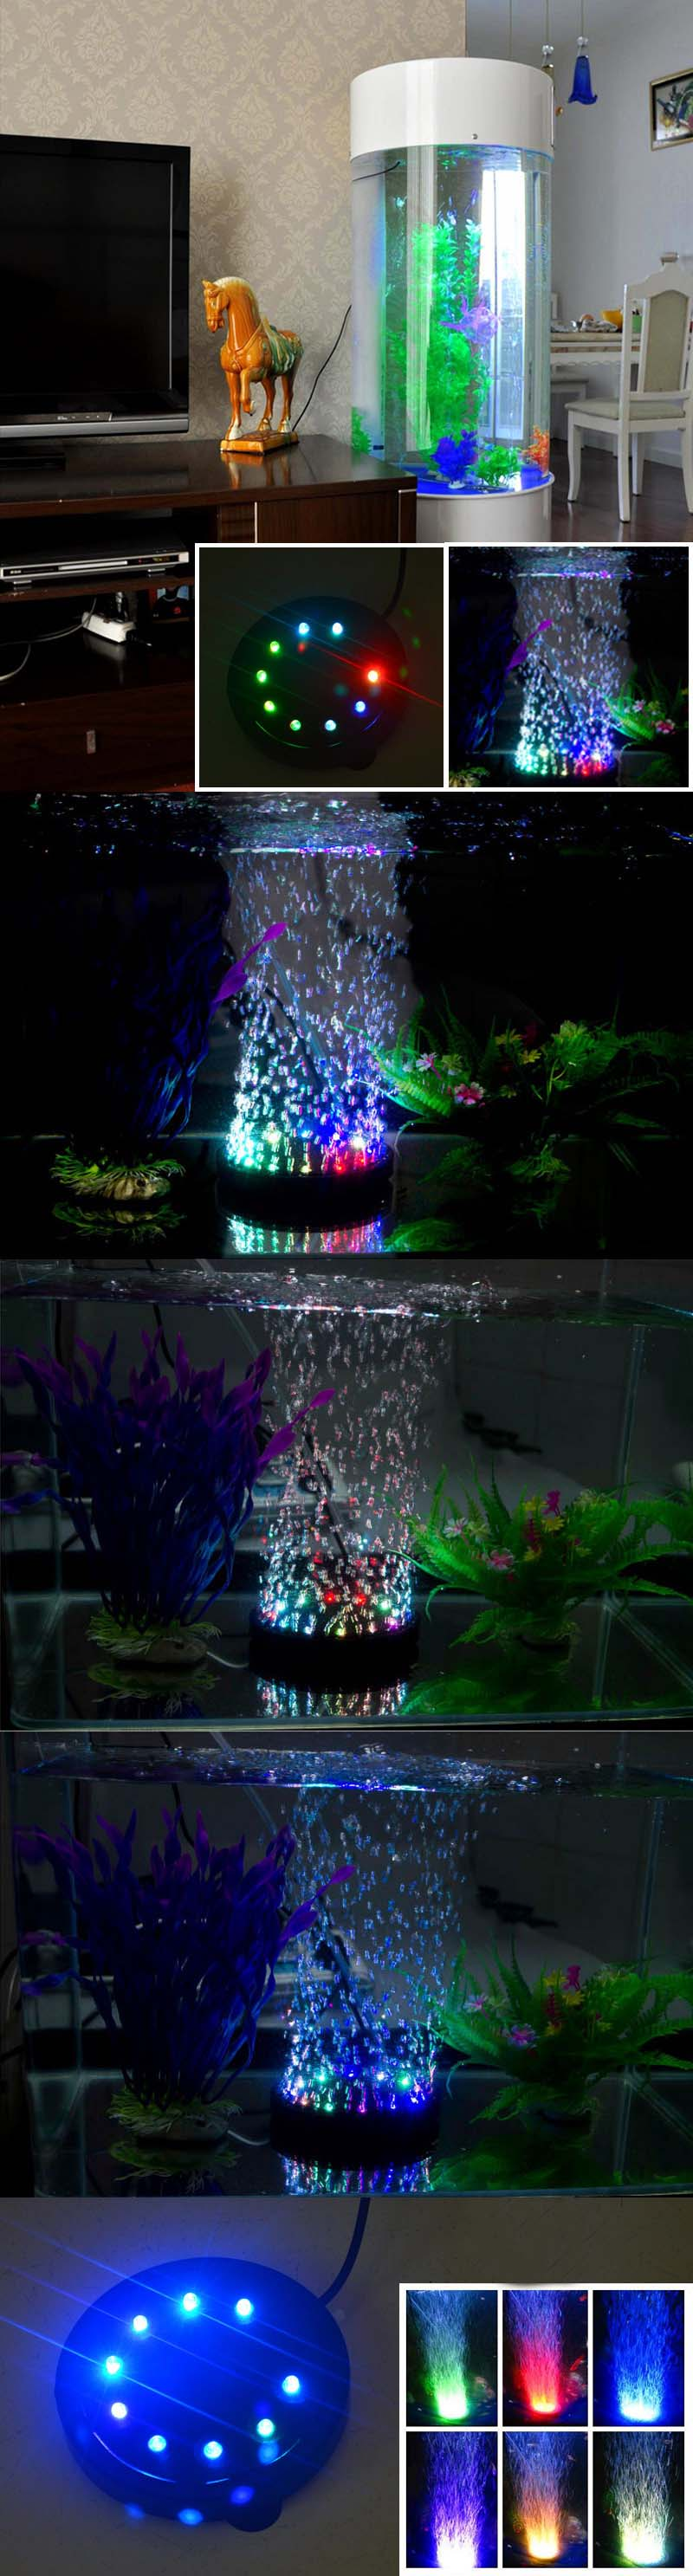 energy saving low heat long lasting fit for aquaculture fish tanks pools and other similar occasions a beautiful aquarium decoration